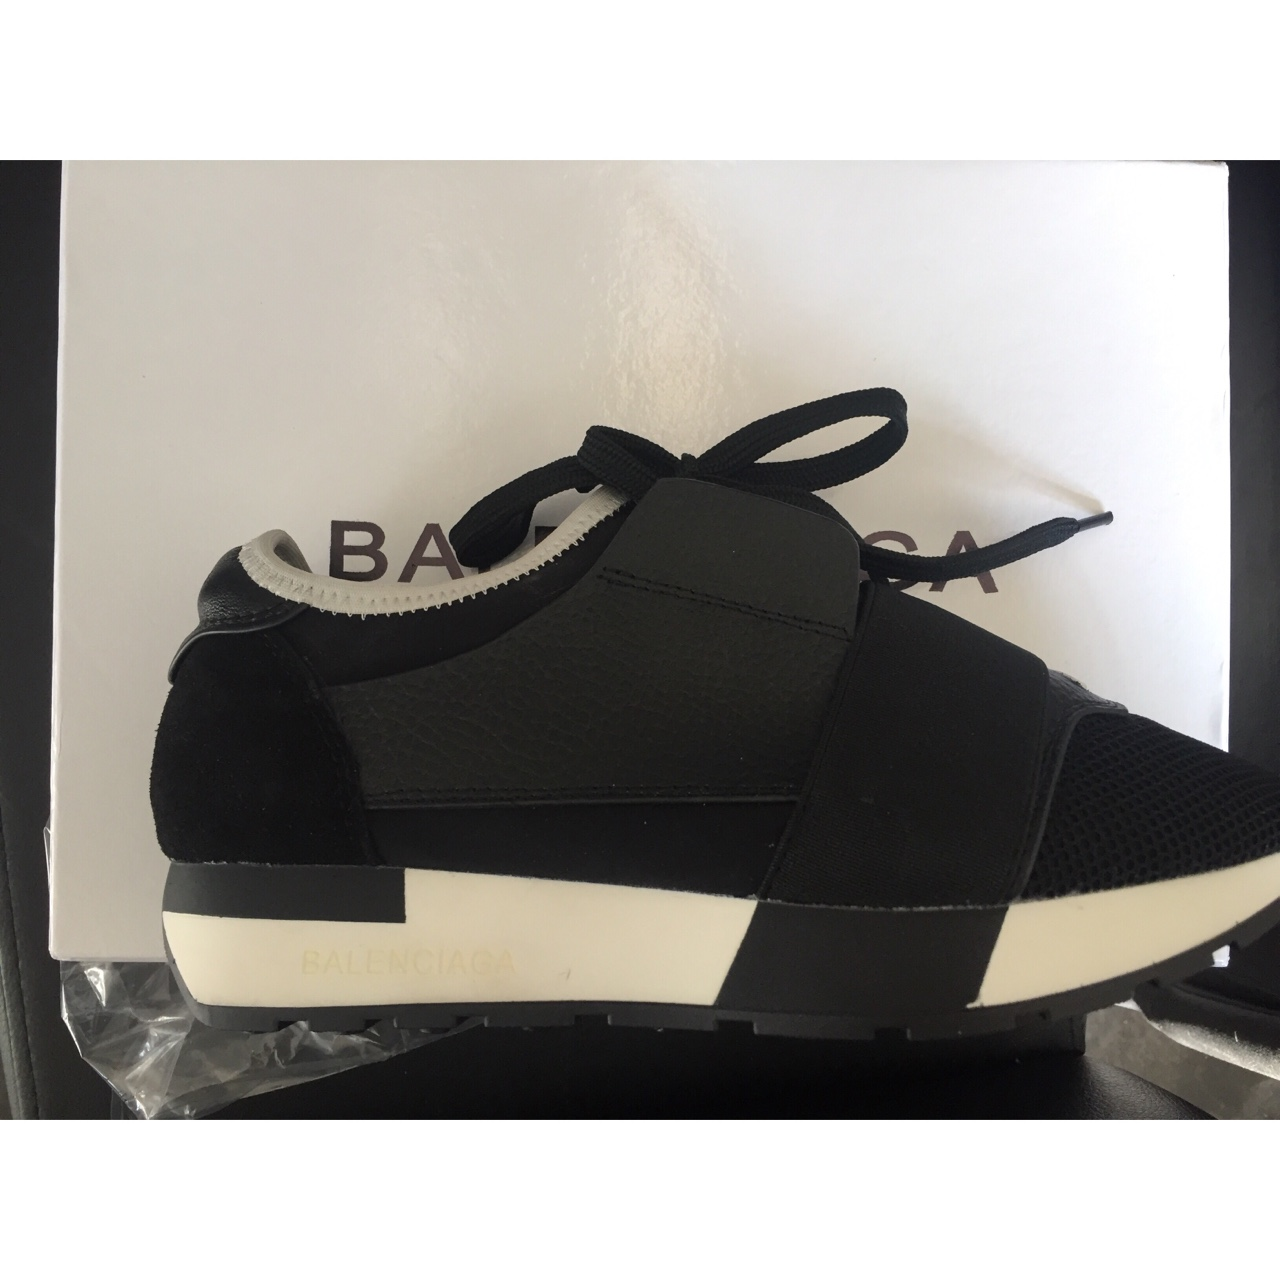 Balenciaga style runners trainers